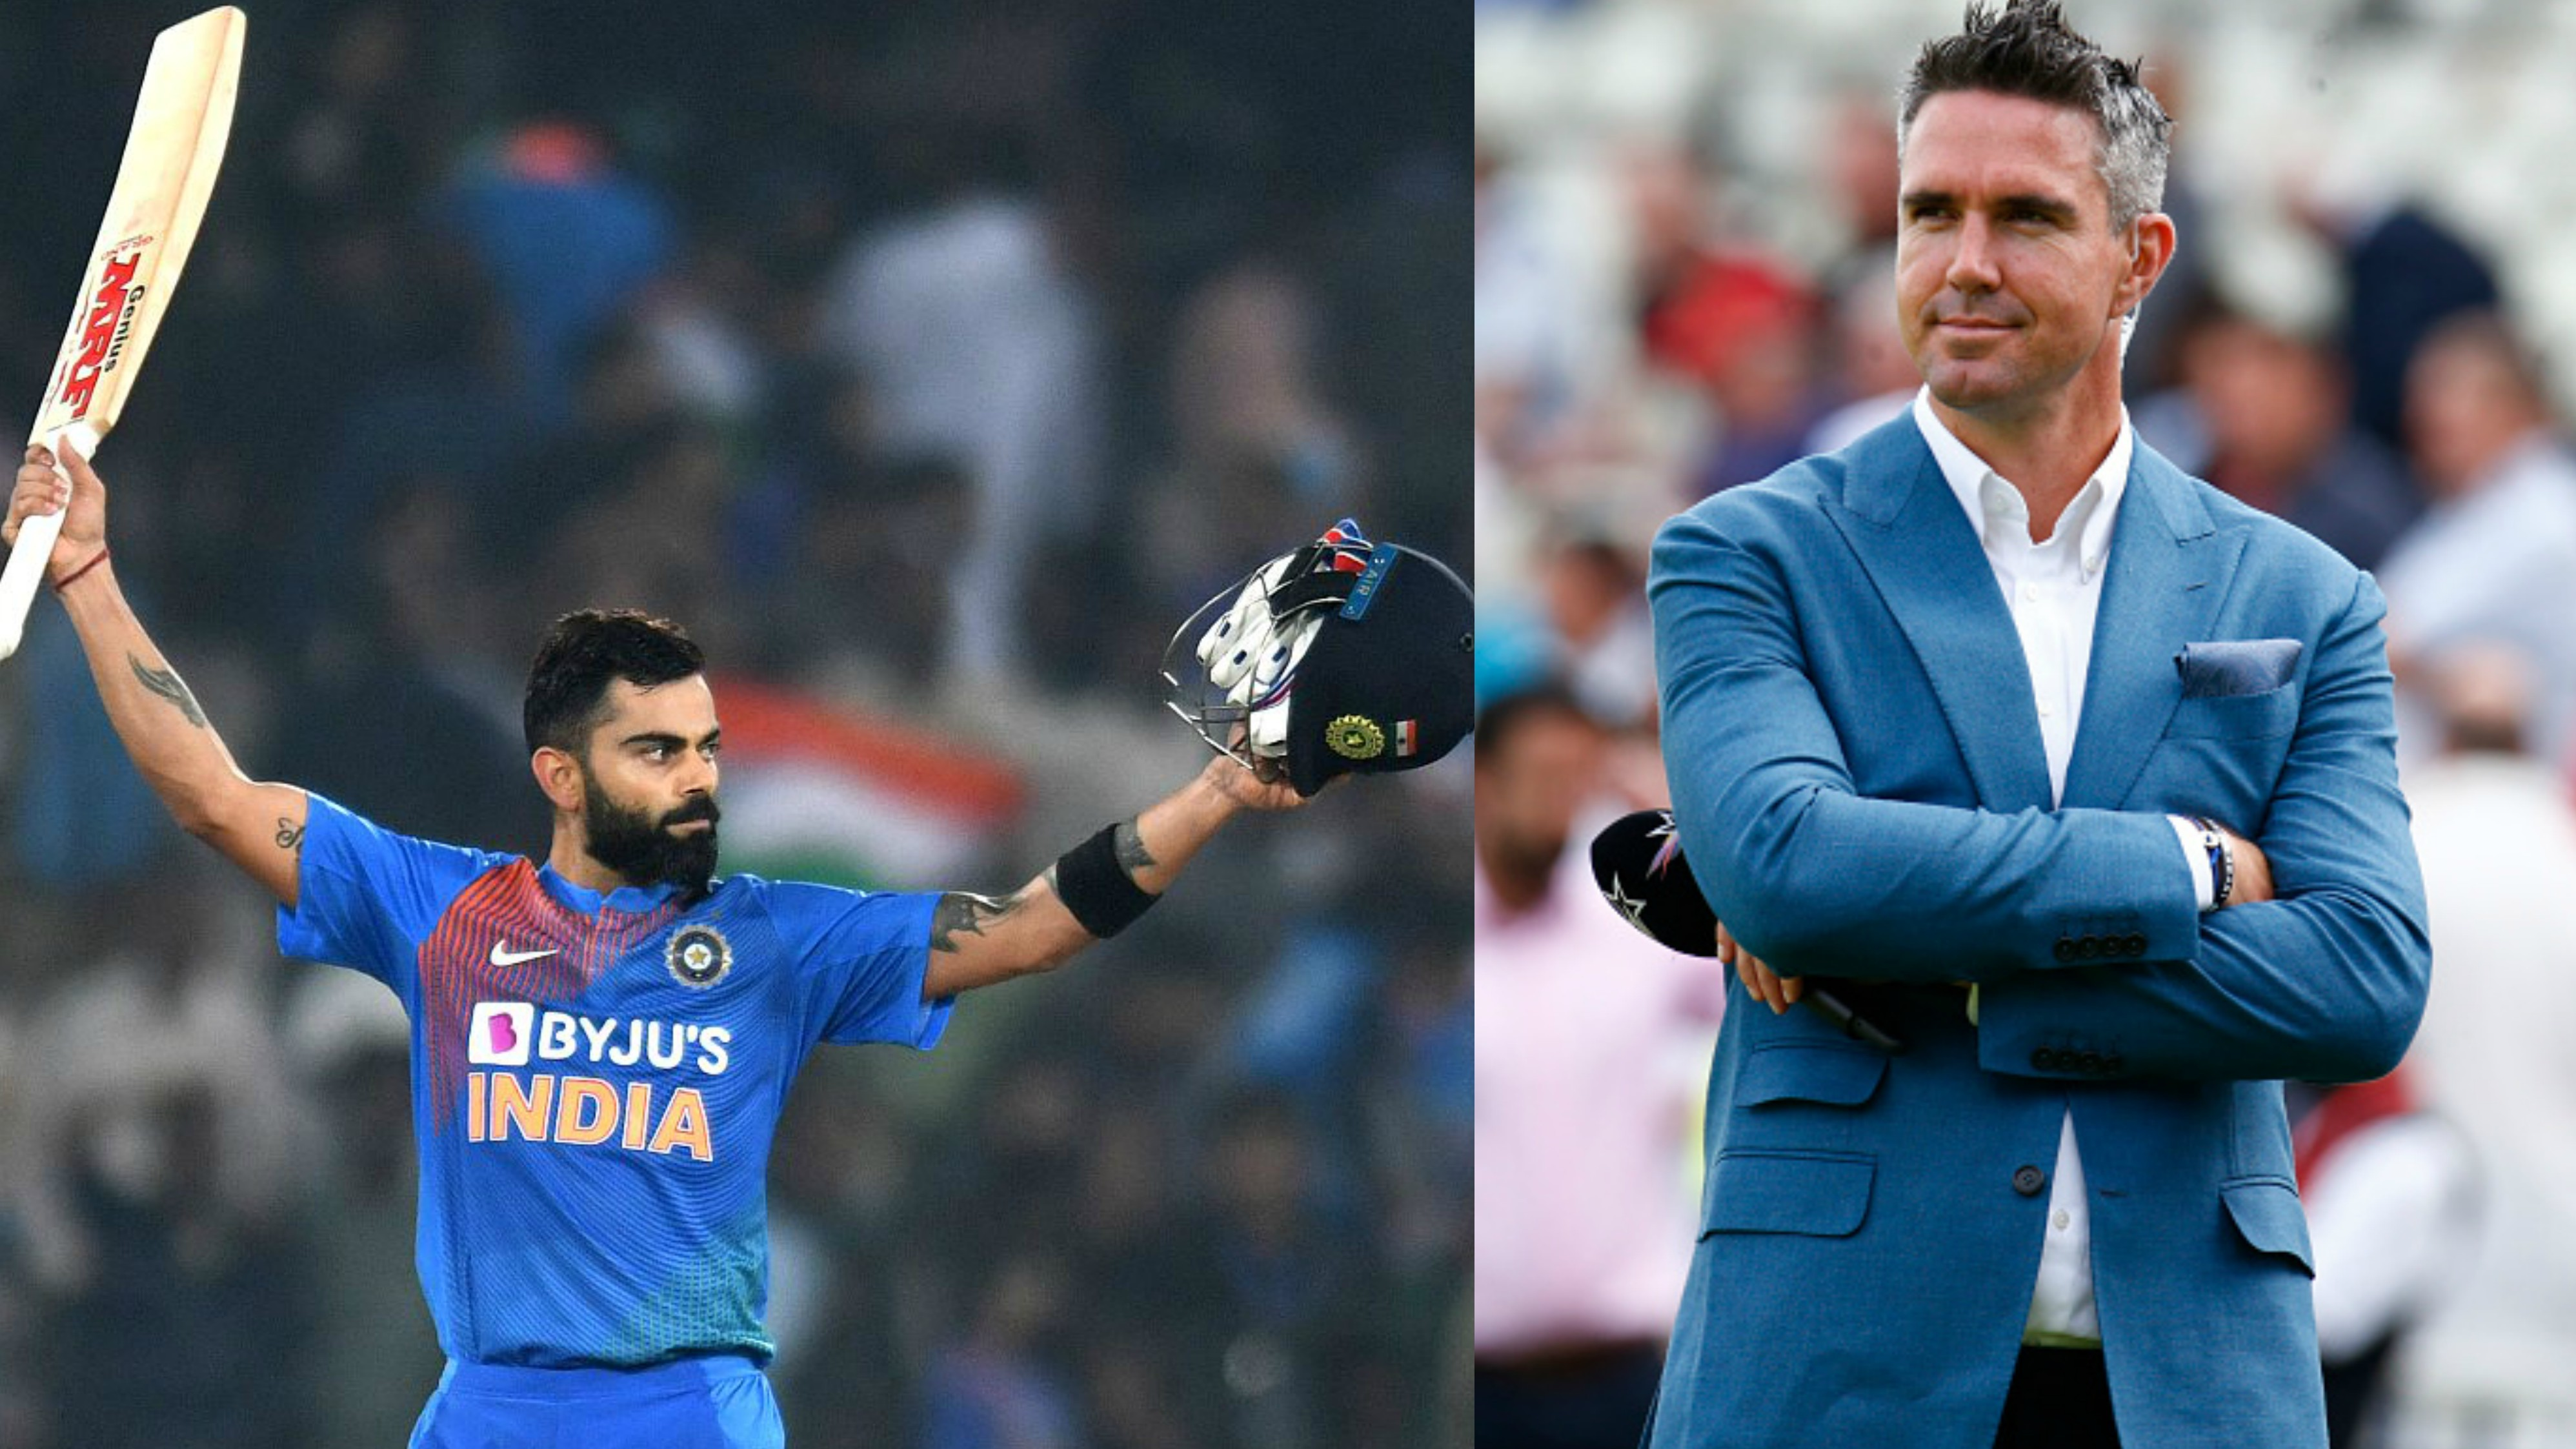 IND v WI 2019: Kevin Pietersen lauds Virat Kohli's magical flick after his Hyderabad masterclass